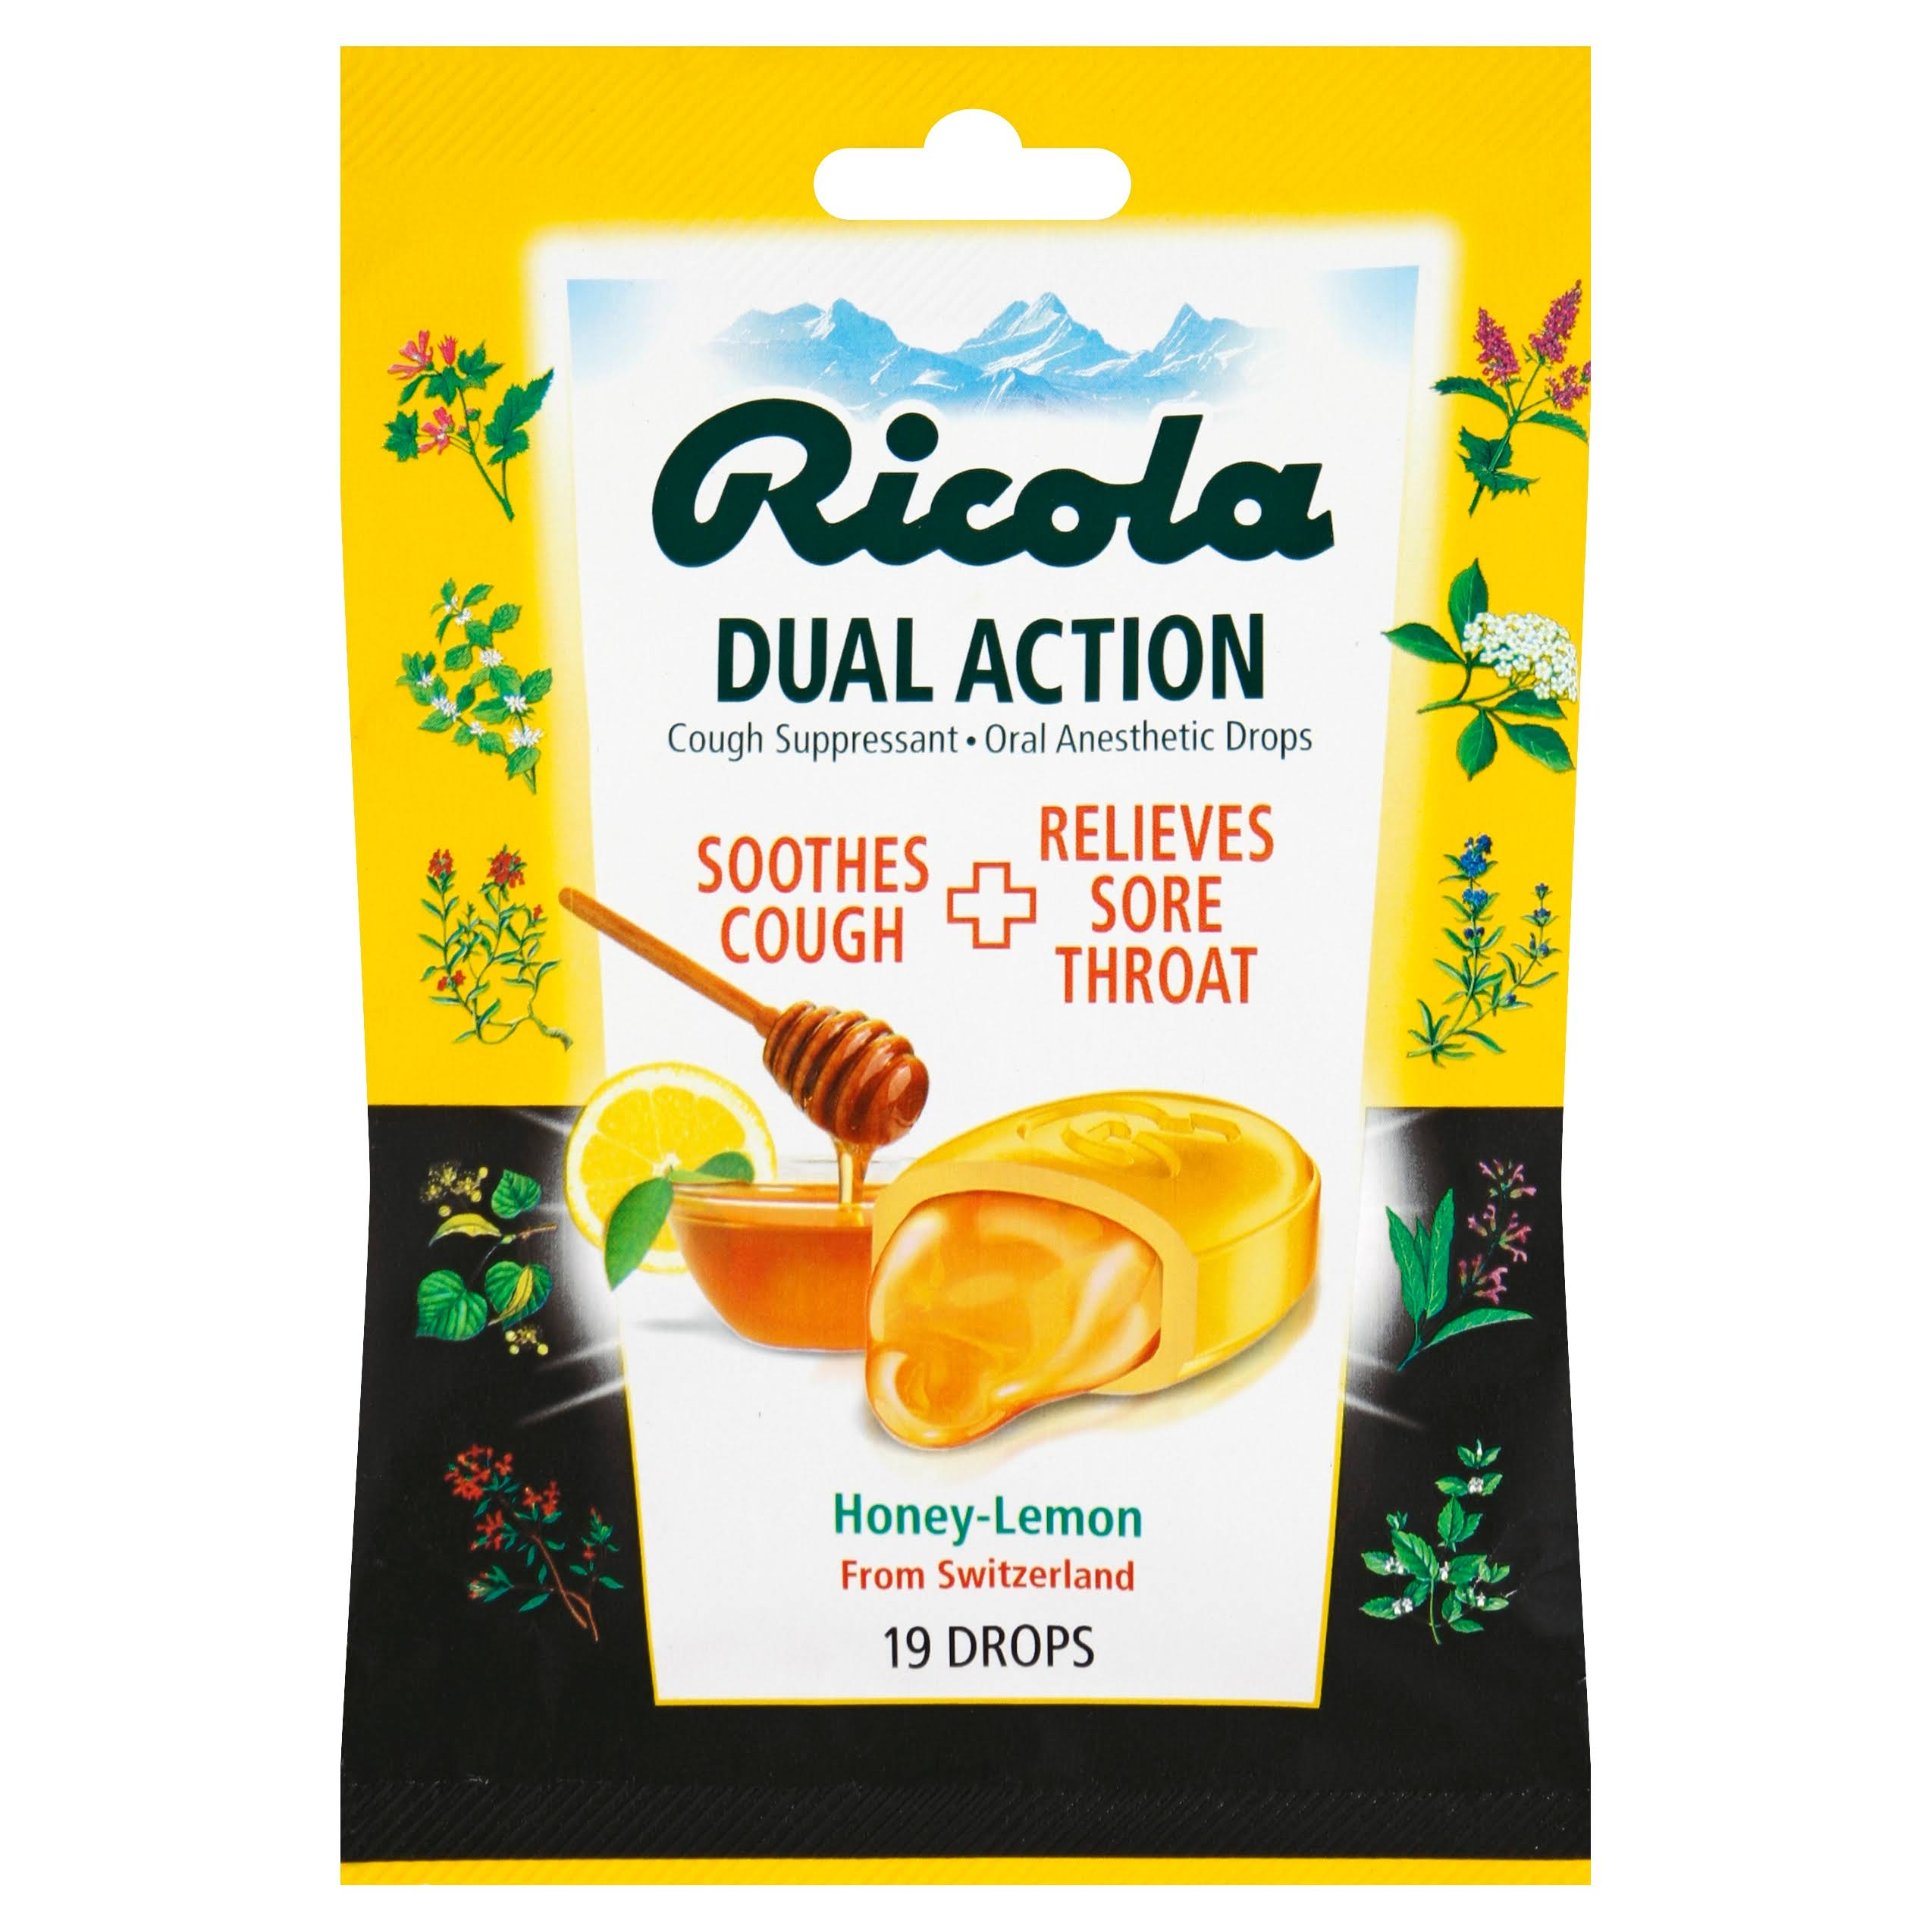 Ricola Soothes Cough Relieves Sore Throat Dual Action Drops - Honey Lemon, 19ct